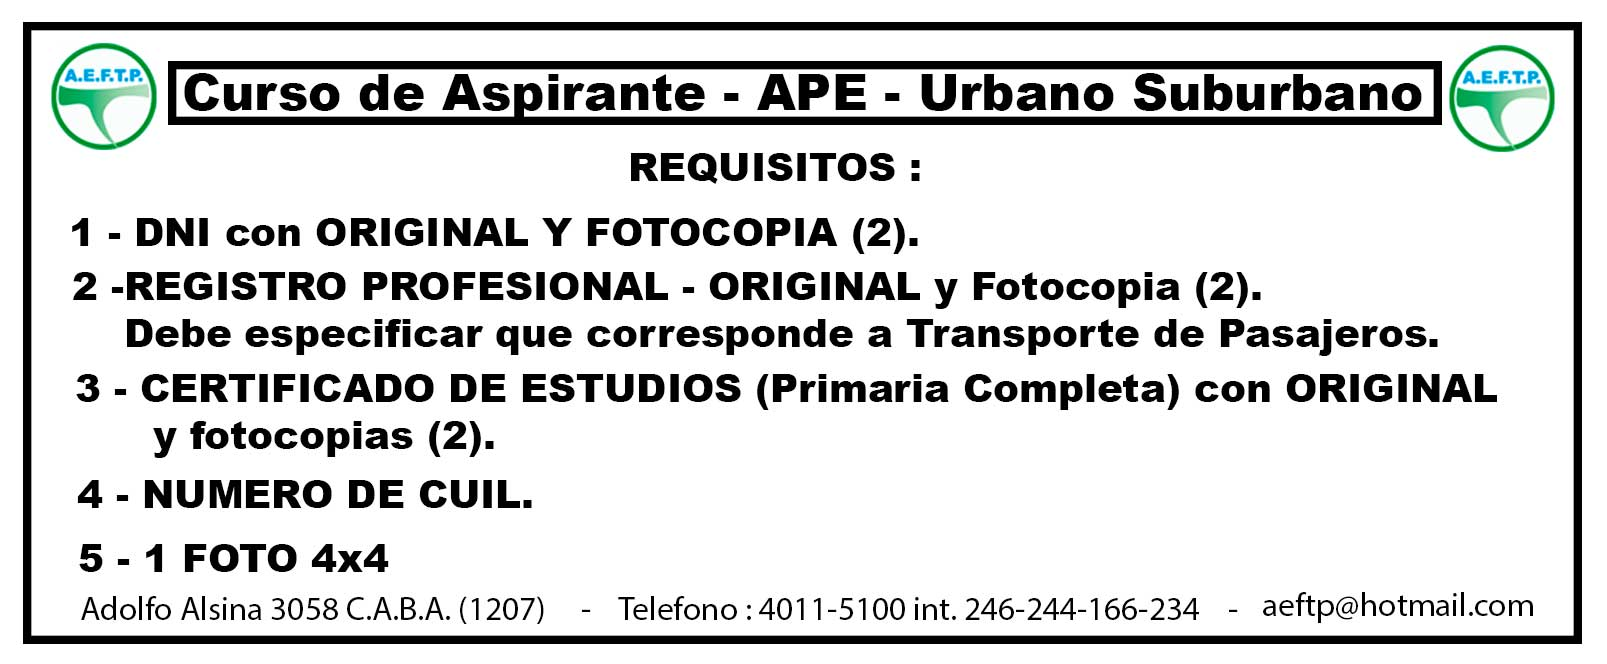 requisitos-APE